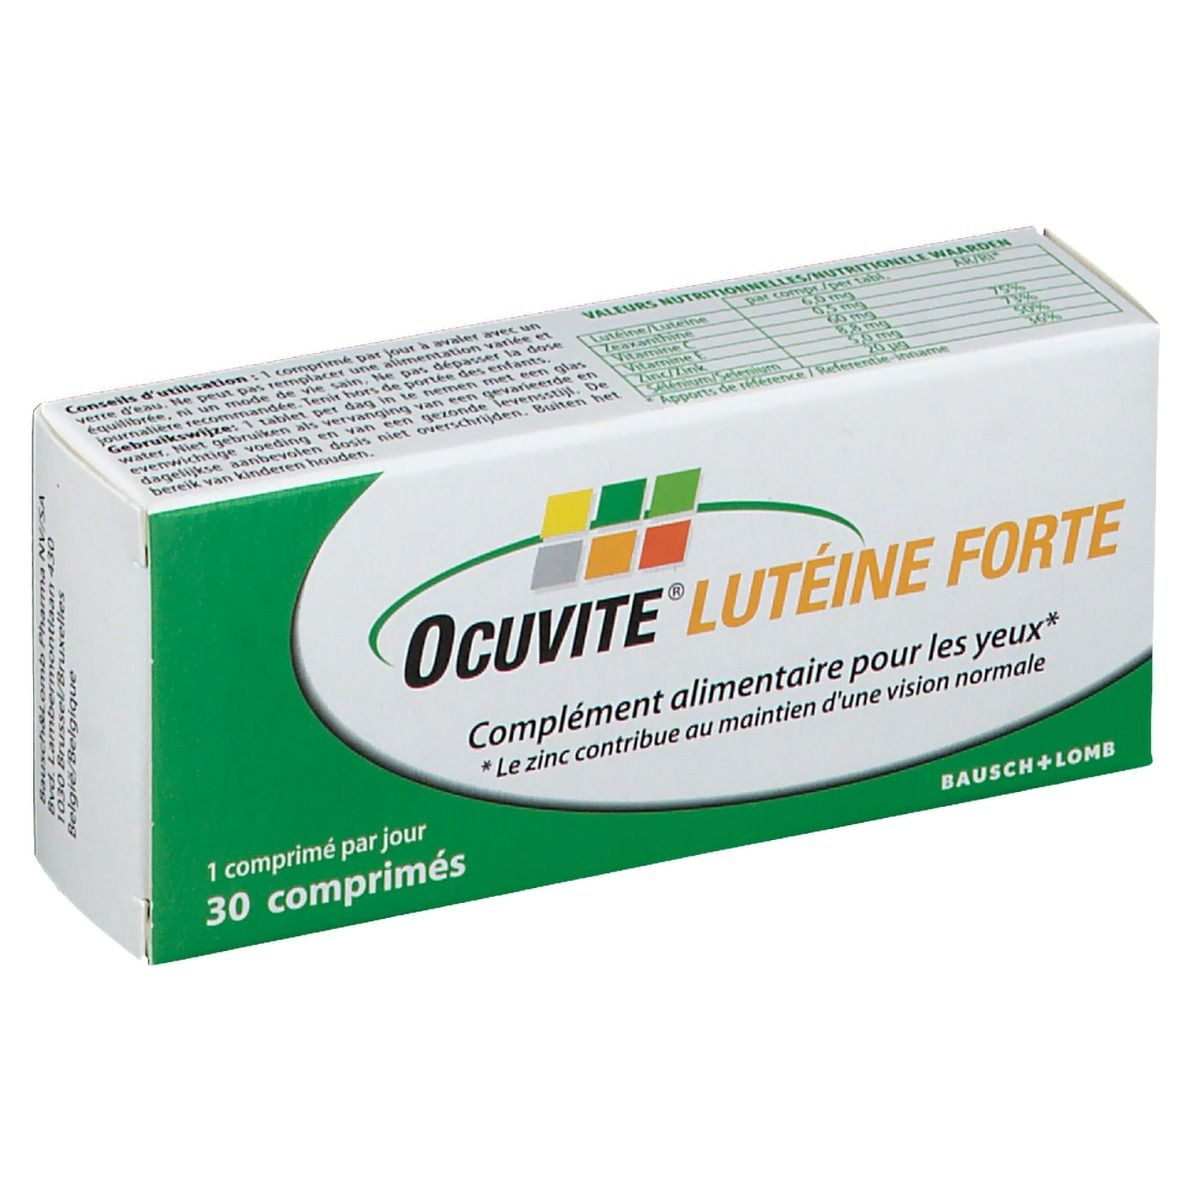 Image of Ocuvite® Lutein Forte